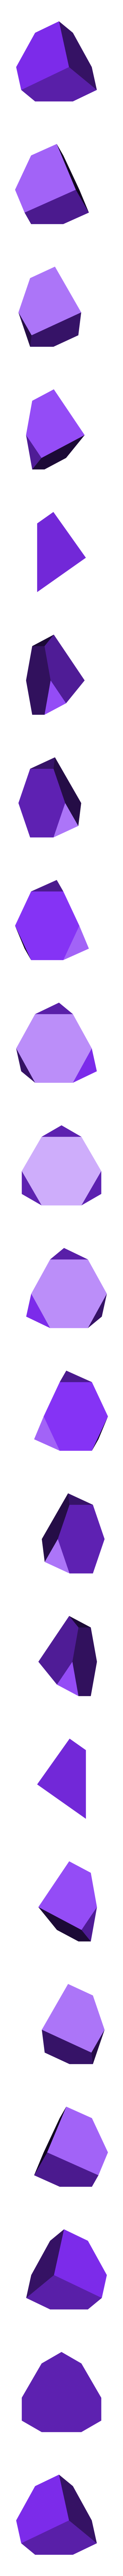 Cube_Hexagonal_Half_HexDown.stl Download free STL file Math Puzzle: Cube Hexagonal Dissection • 3D printing object, LGBU